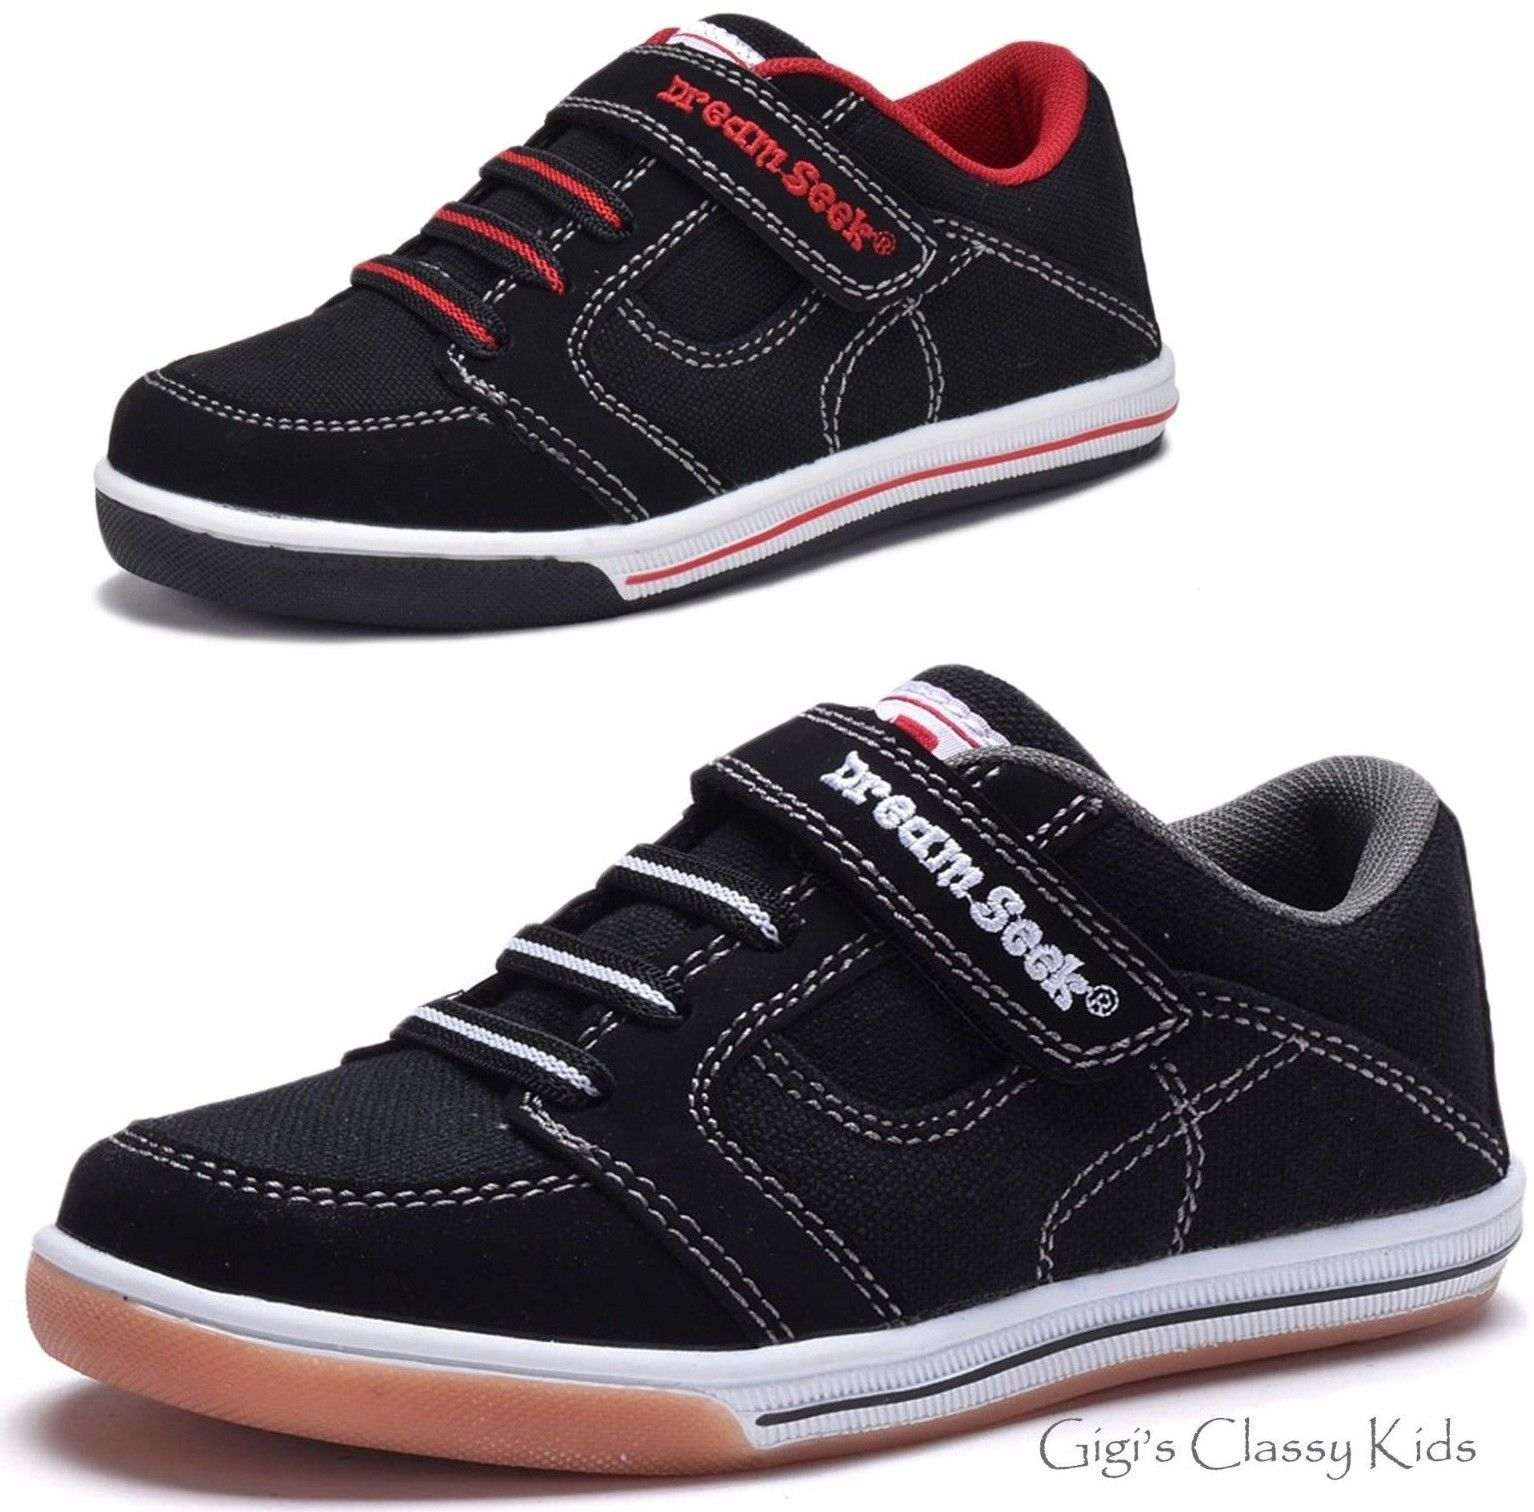 online store 3181b 8ea39 Boys Shoes 57929  New Boys Black Canvas Tennis Shoes Athletic Sneakers  Toddler Youth Kids Skate -  BUY IT NOW ONLY   19.99 on  eBay  shoes  black   canvas ...